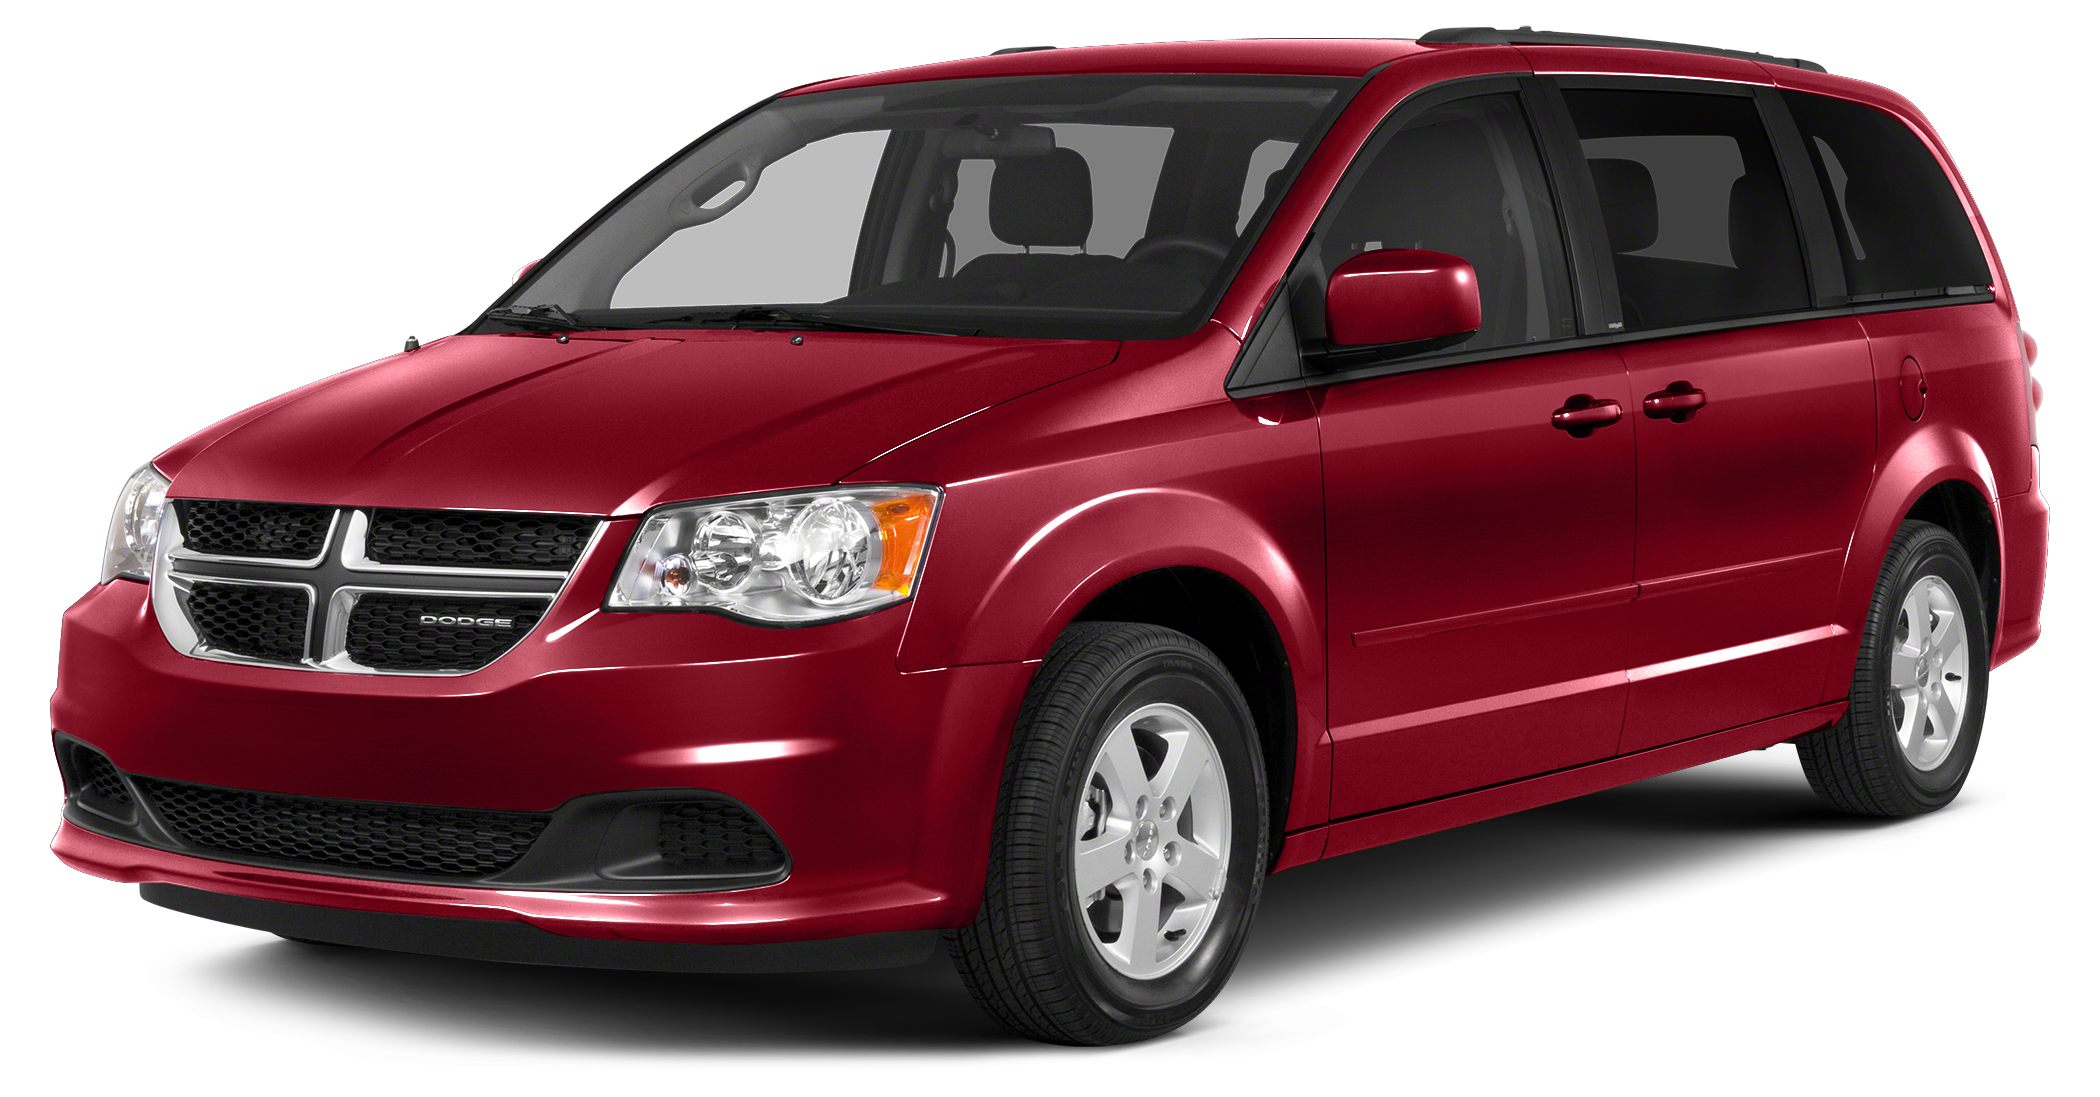 2015 Dodge Grand Caravan SXT CARFAX 1-Owner ONLY 17972 Miles SXT trim FUEL EFFICIENT 25 MPG Hw